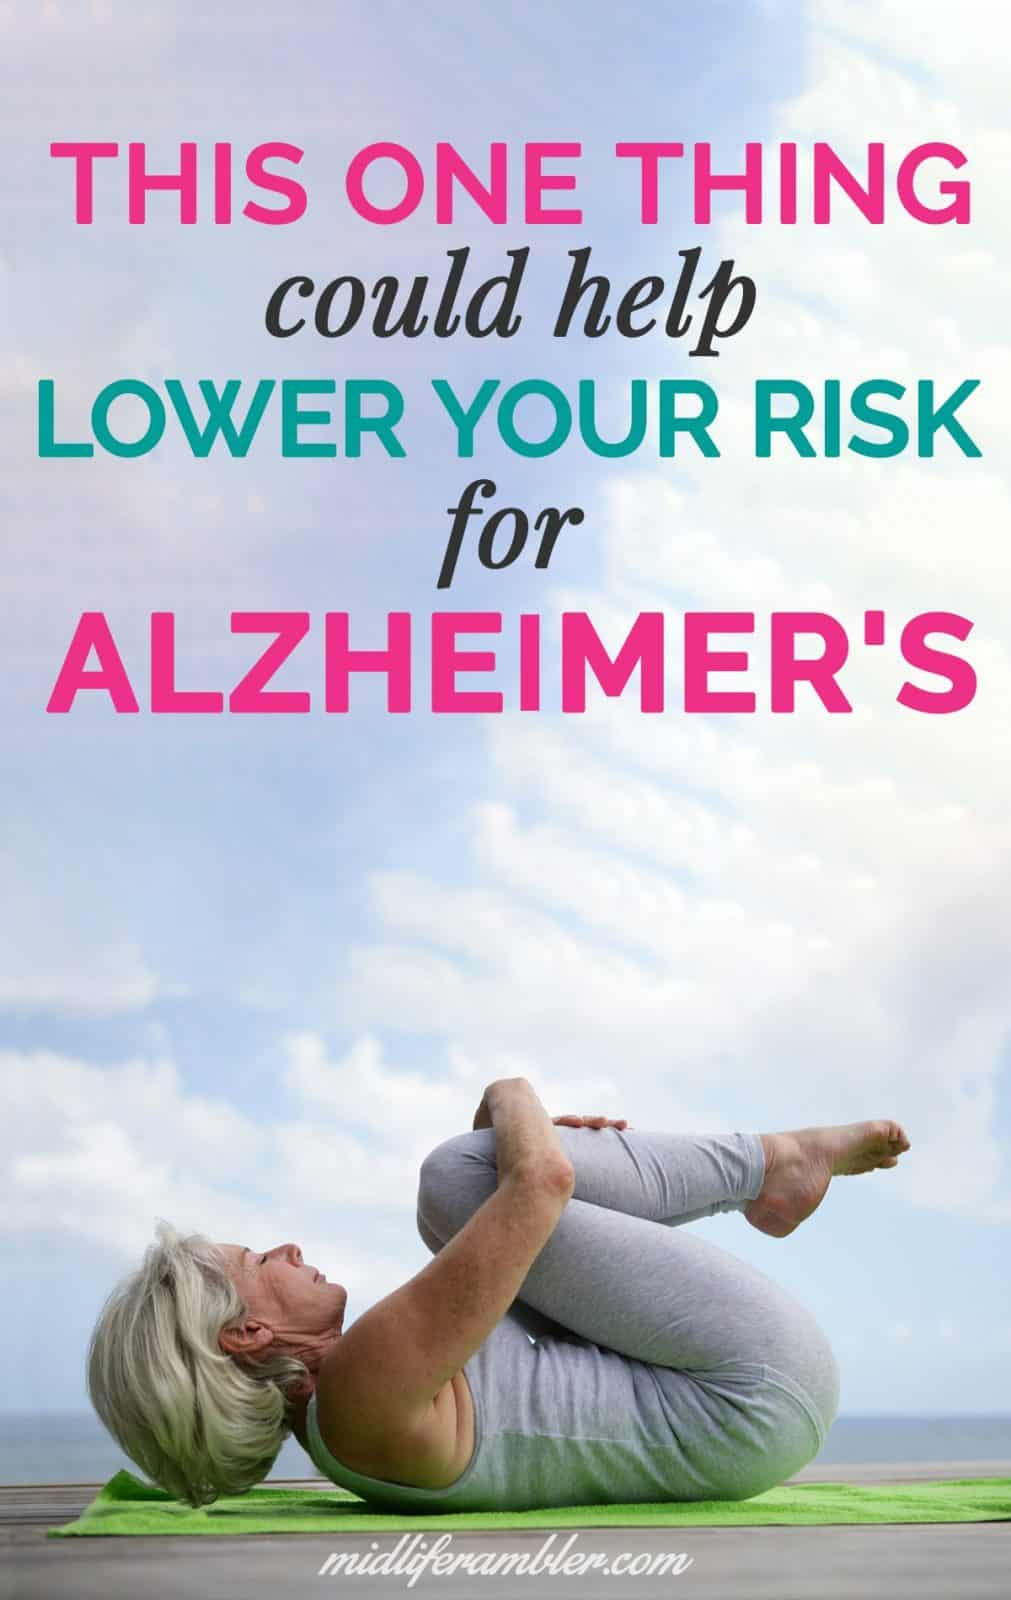 Why Having a Purpose in Life May Protect You From Alzheimer's 4